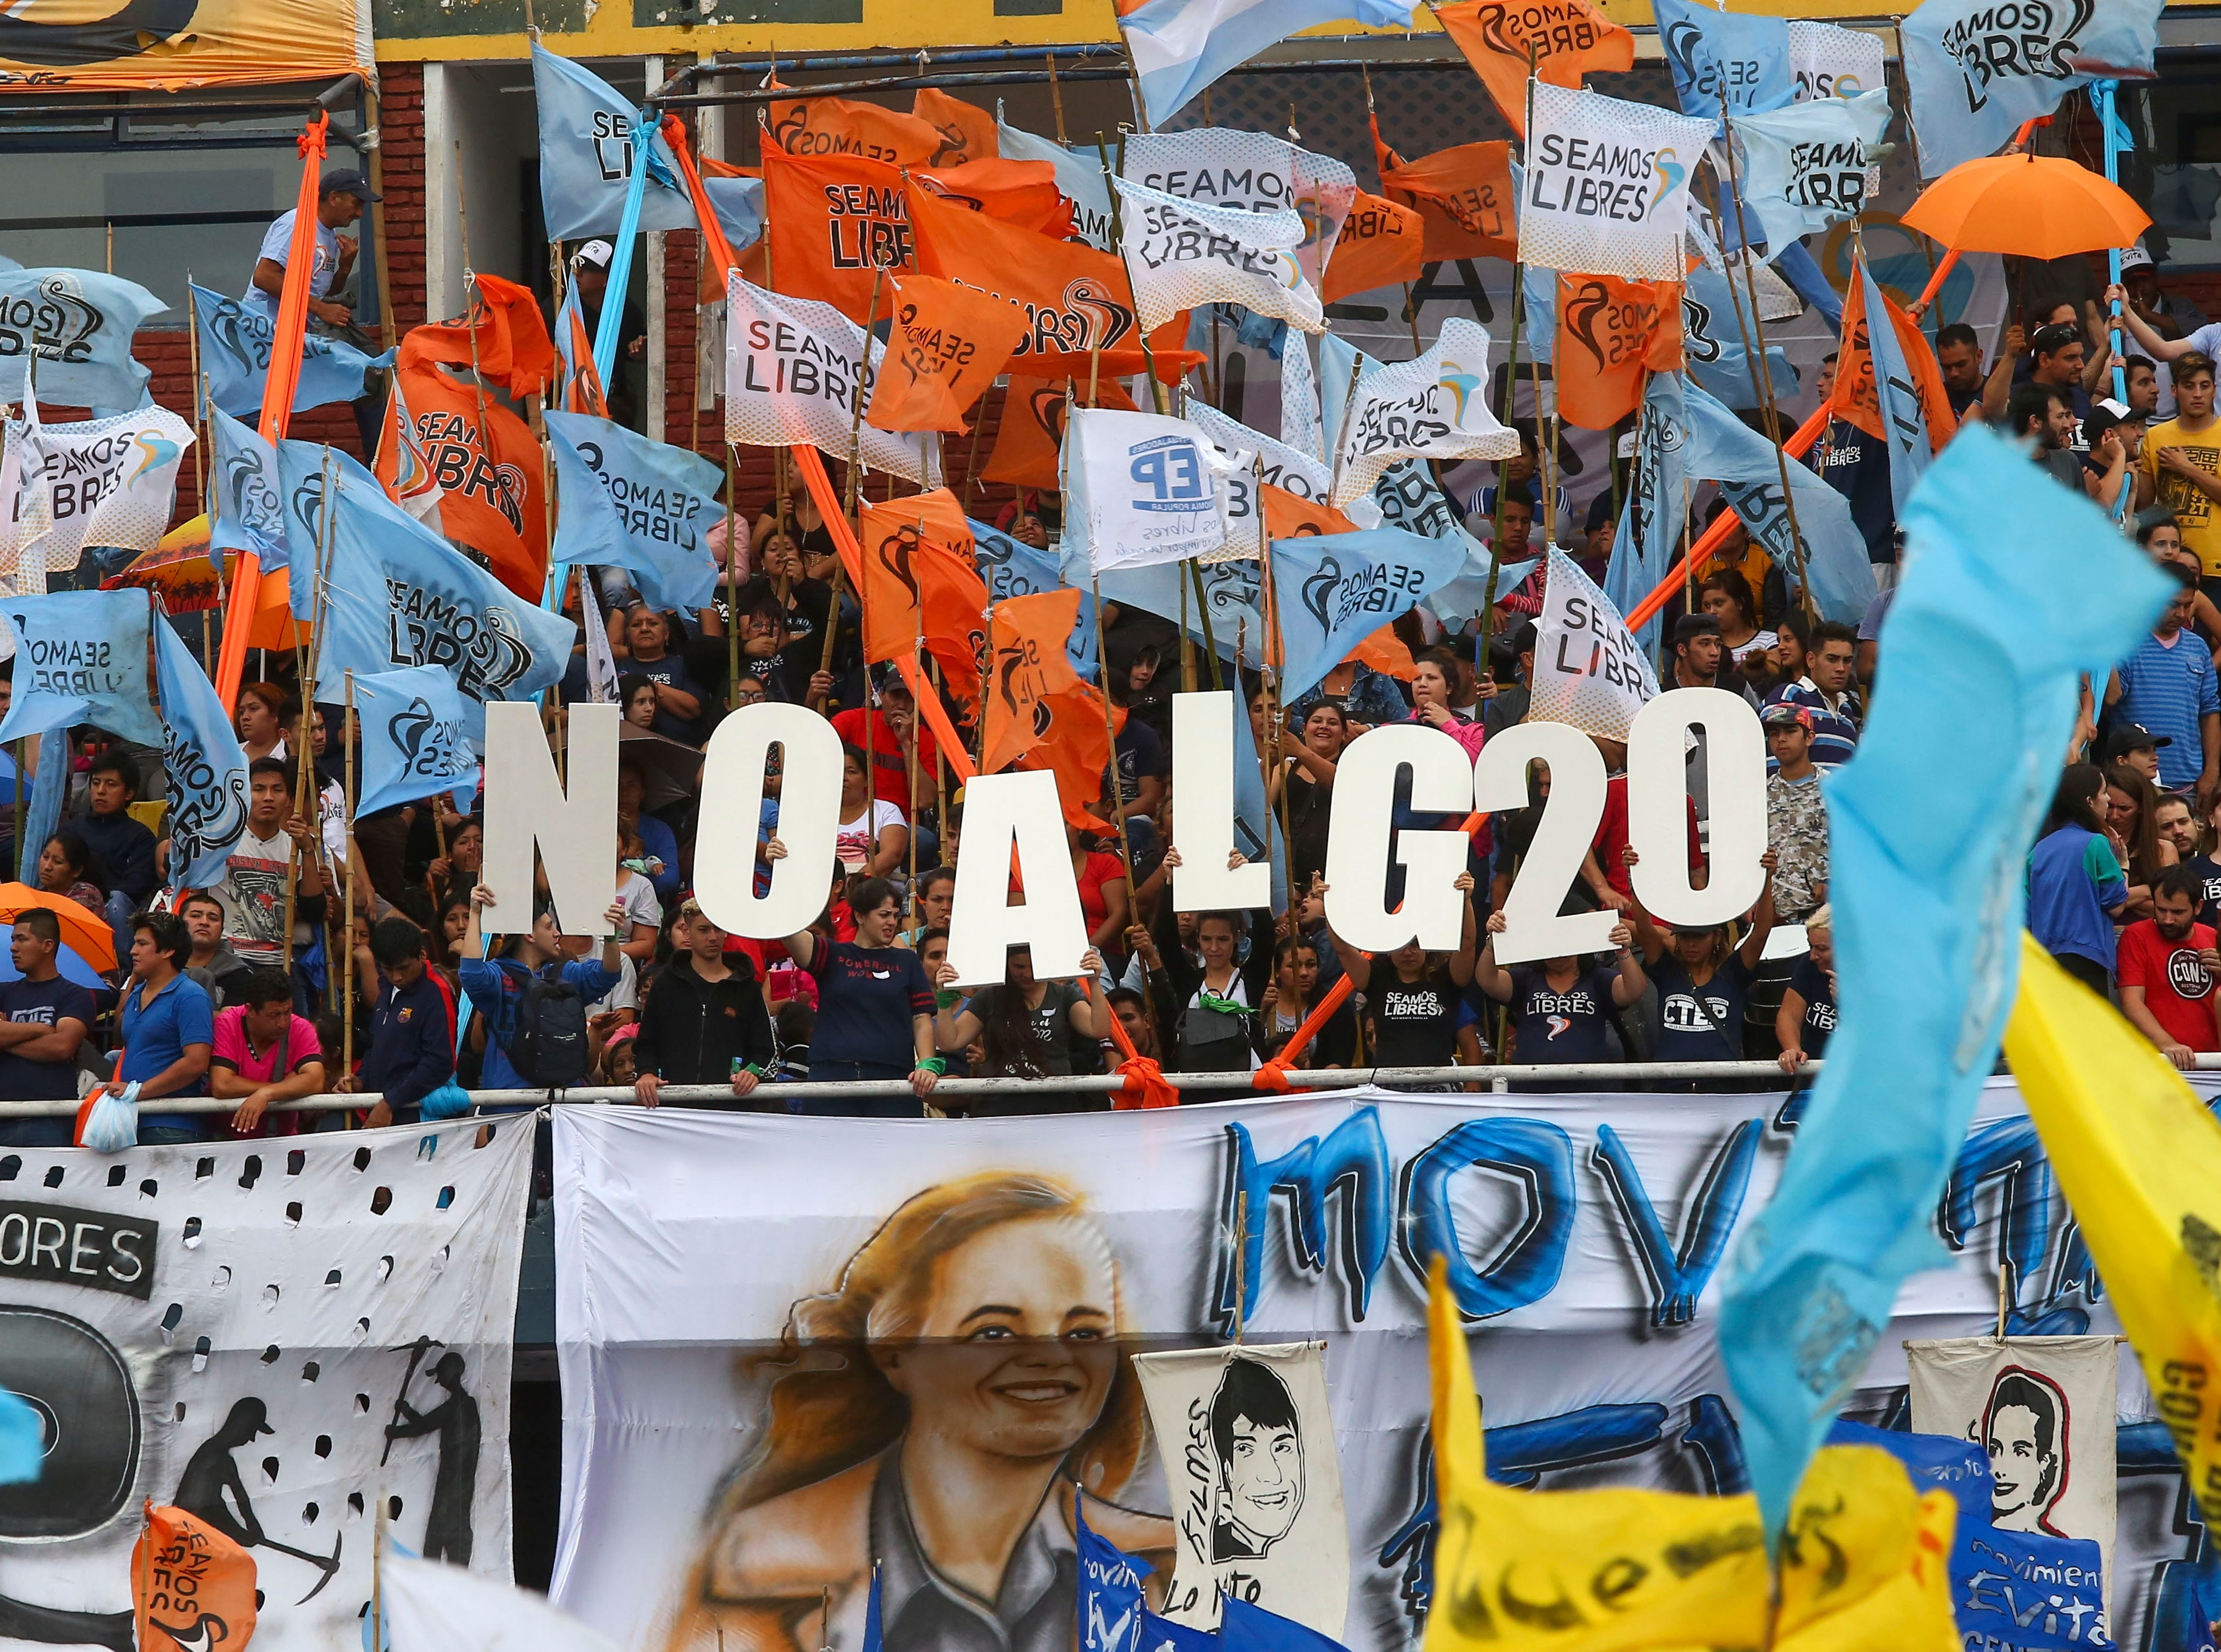 """BUENOS AIRES, ARGENTINA - NOVEMBER 27: Demonstrators wave flags and hold letters that read in Spanish """"No to G20"""" during a protest against G20 organized by Communist Party and social organizations at Leon Kolbowsky Stadium on November 27, 2018 in Buenos Aires, Argentina. (Photo by Nacho Sanchez/Getty Images)"""